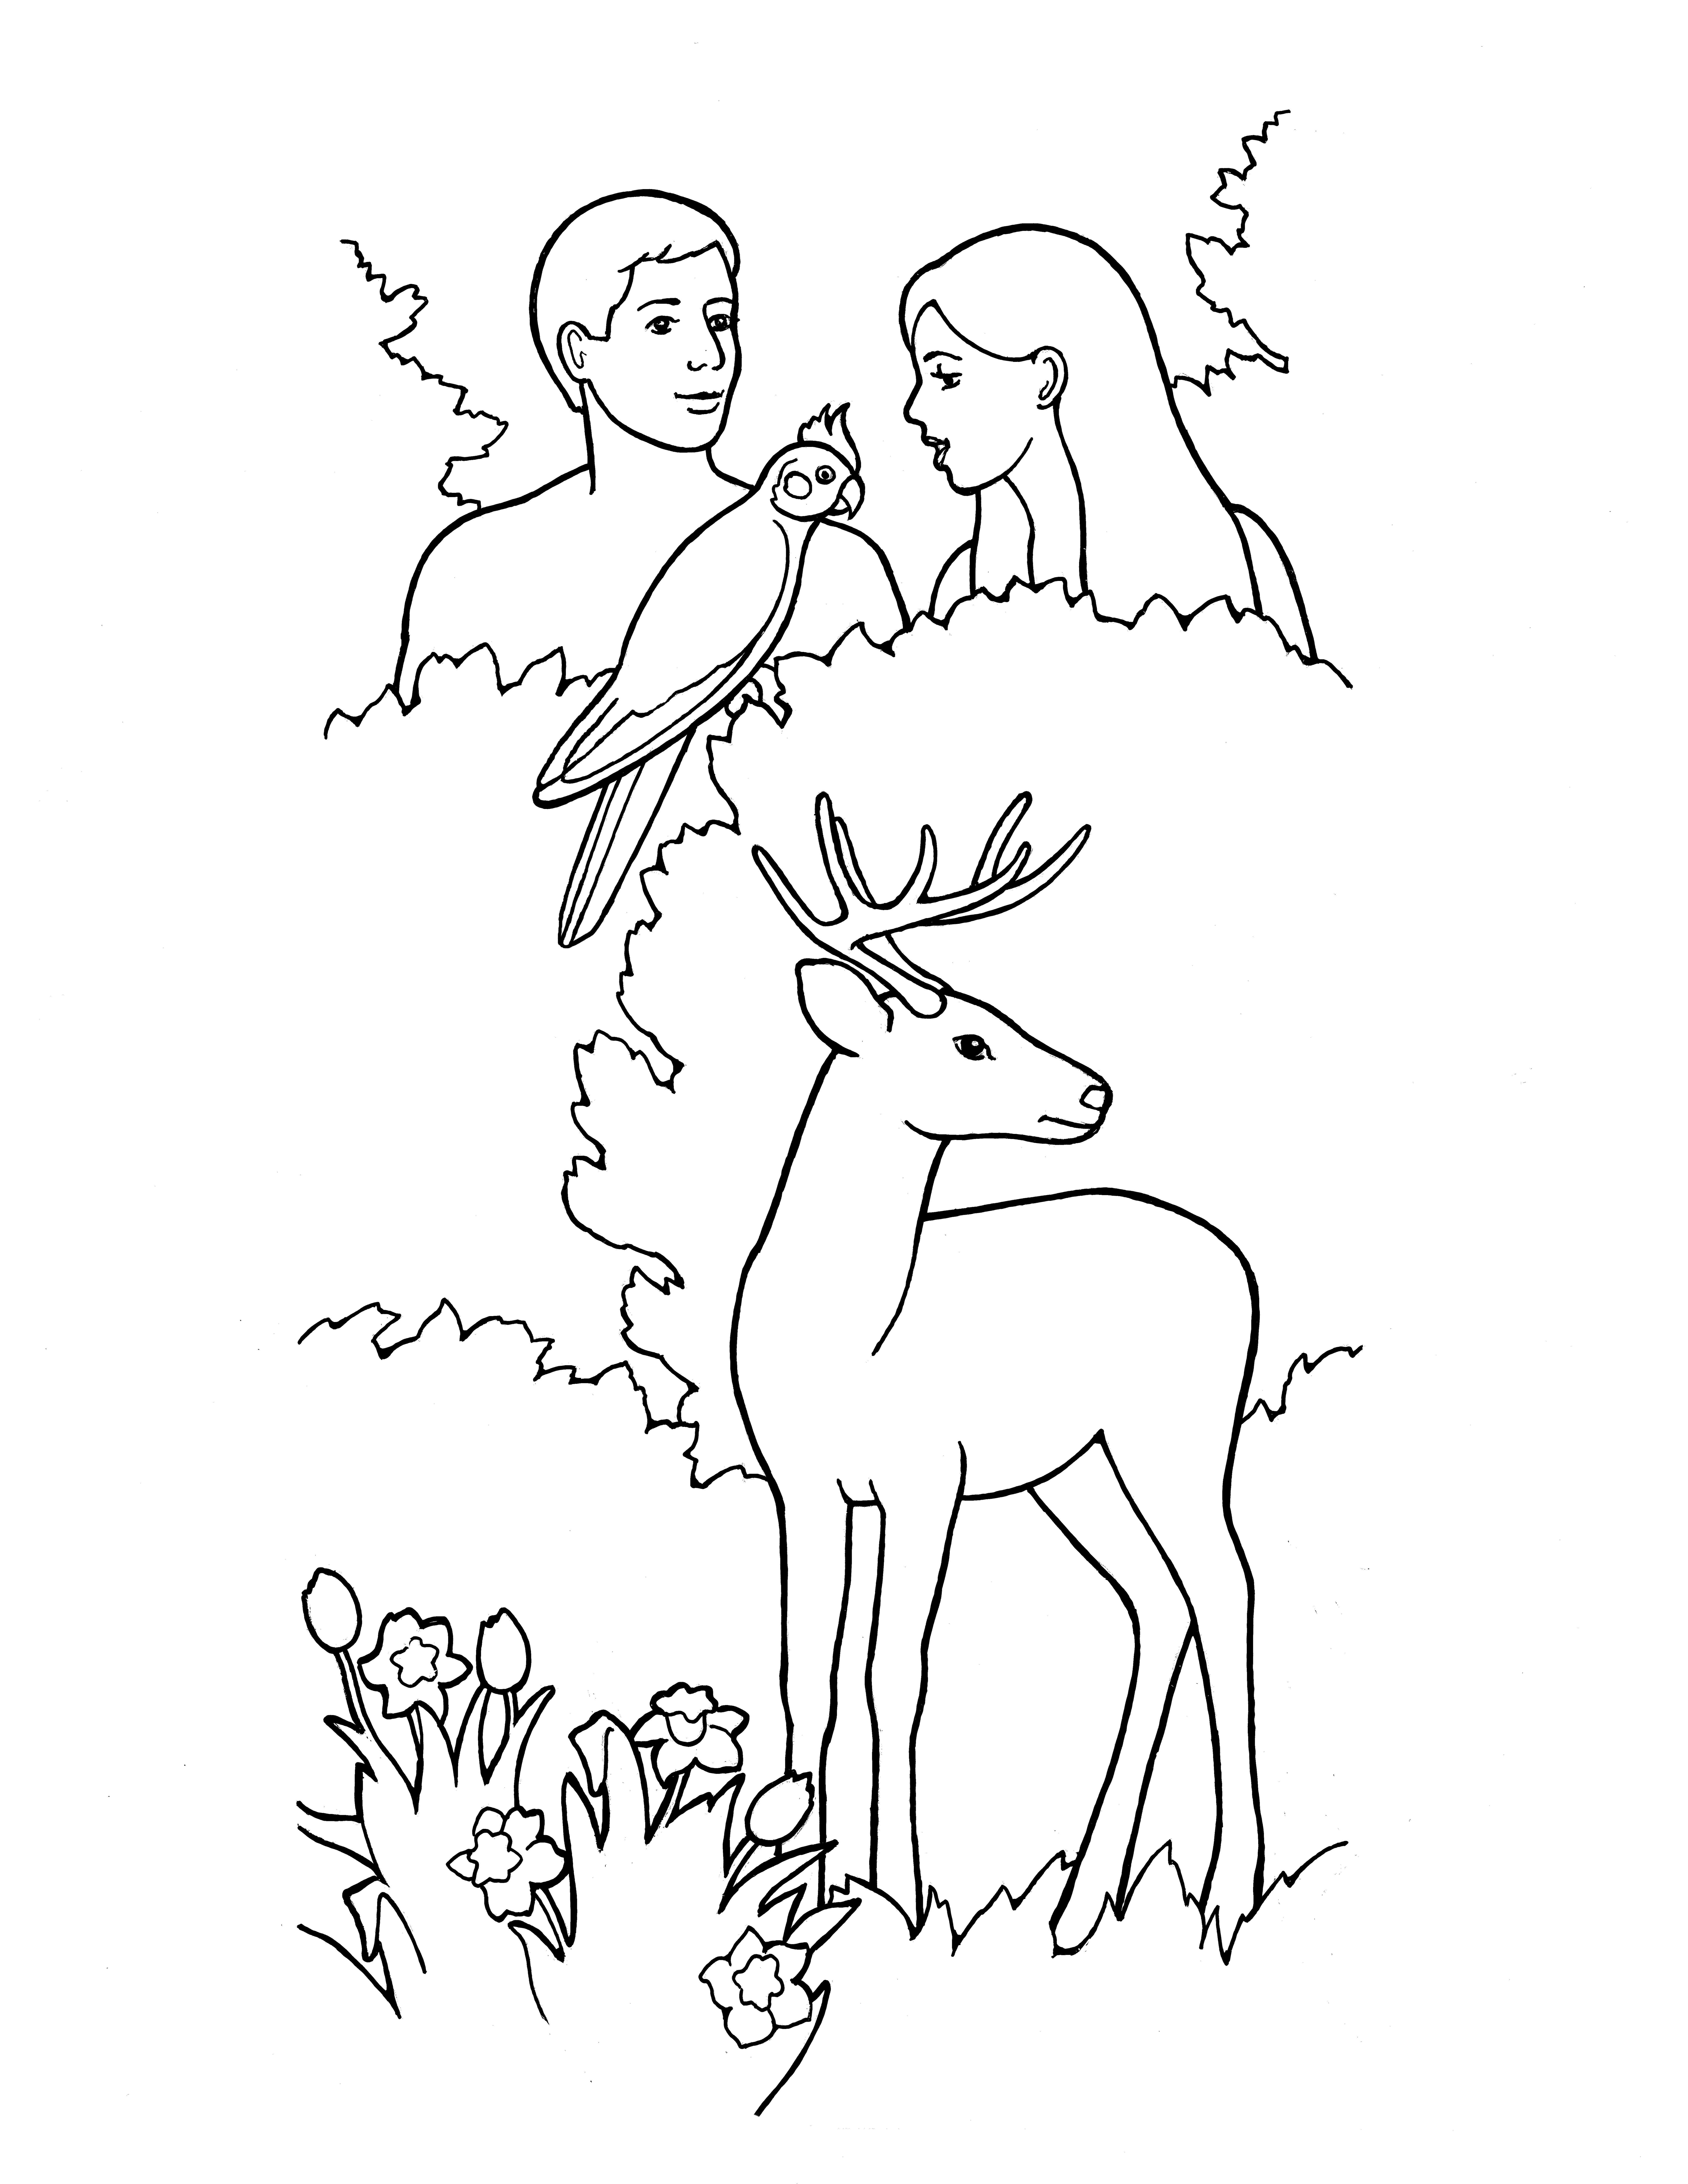 An illustration of Adam & Eve in the Garden of Eden from Nursery Manual, Behold Your Little Ones (2008), page 99.